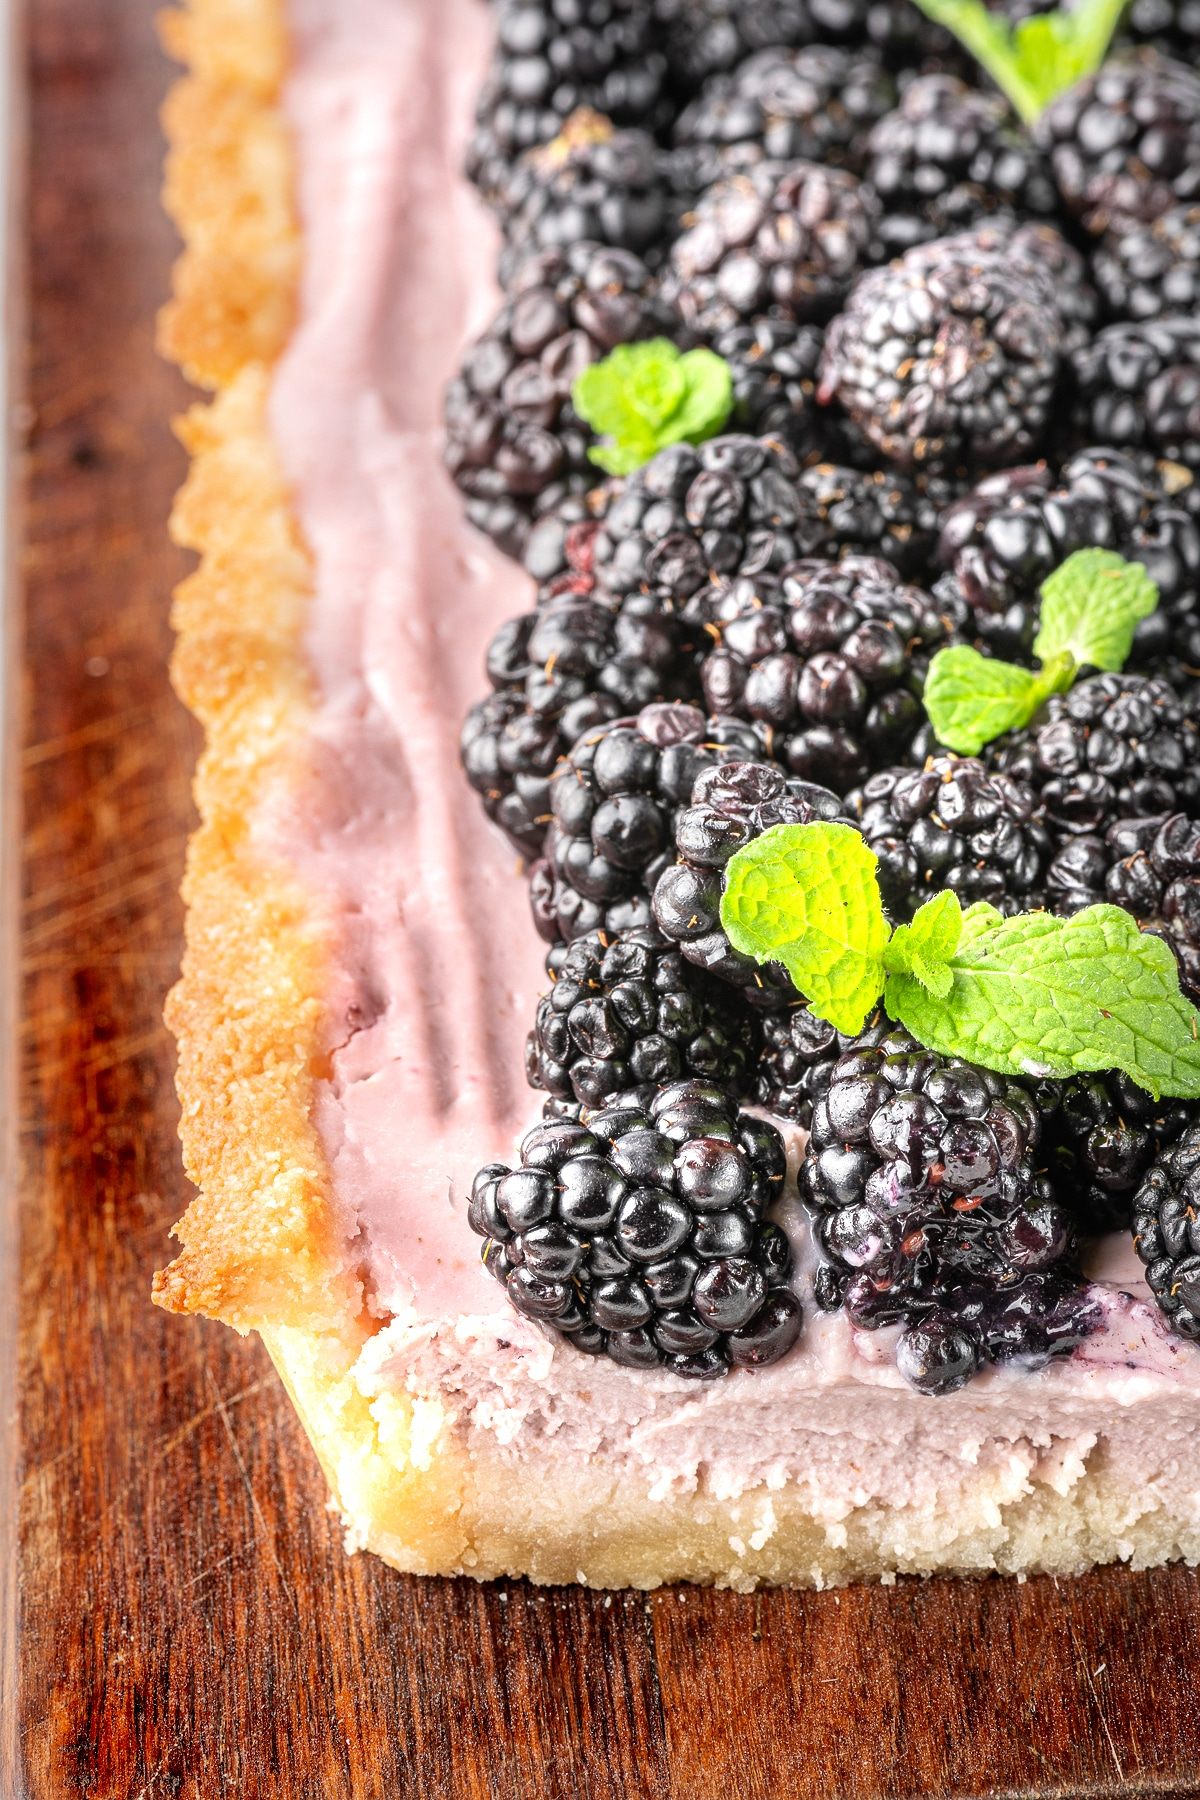 blackberry tart dessert on a rustic wooden cutting board with the edge of the tart sliced to show the inside creamy filling